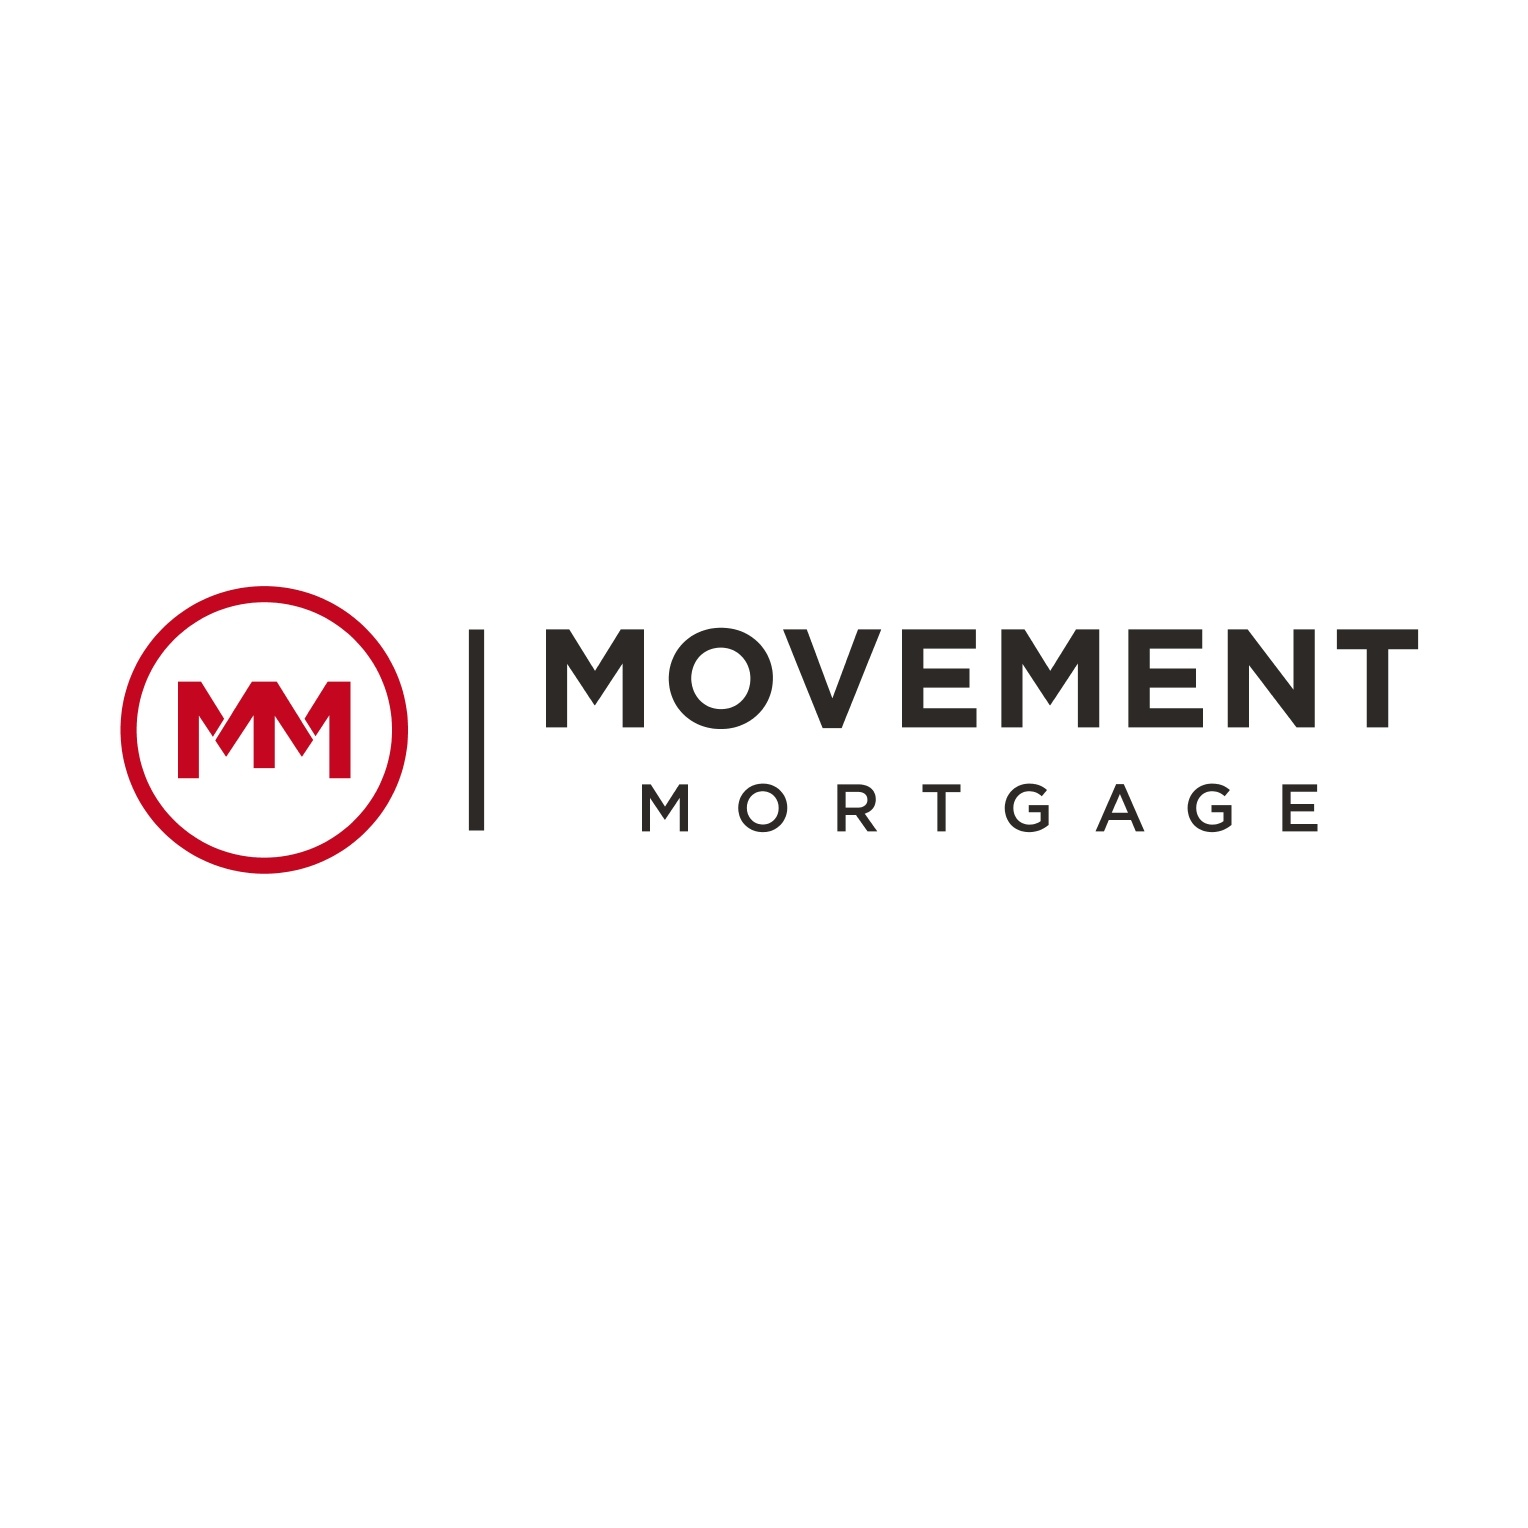 Movement Mortgage.jpg